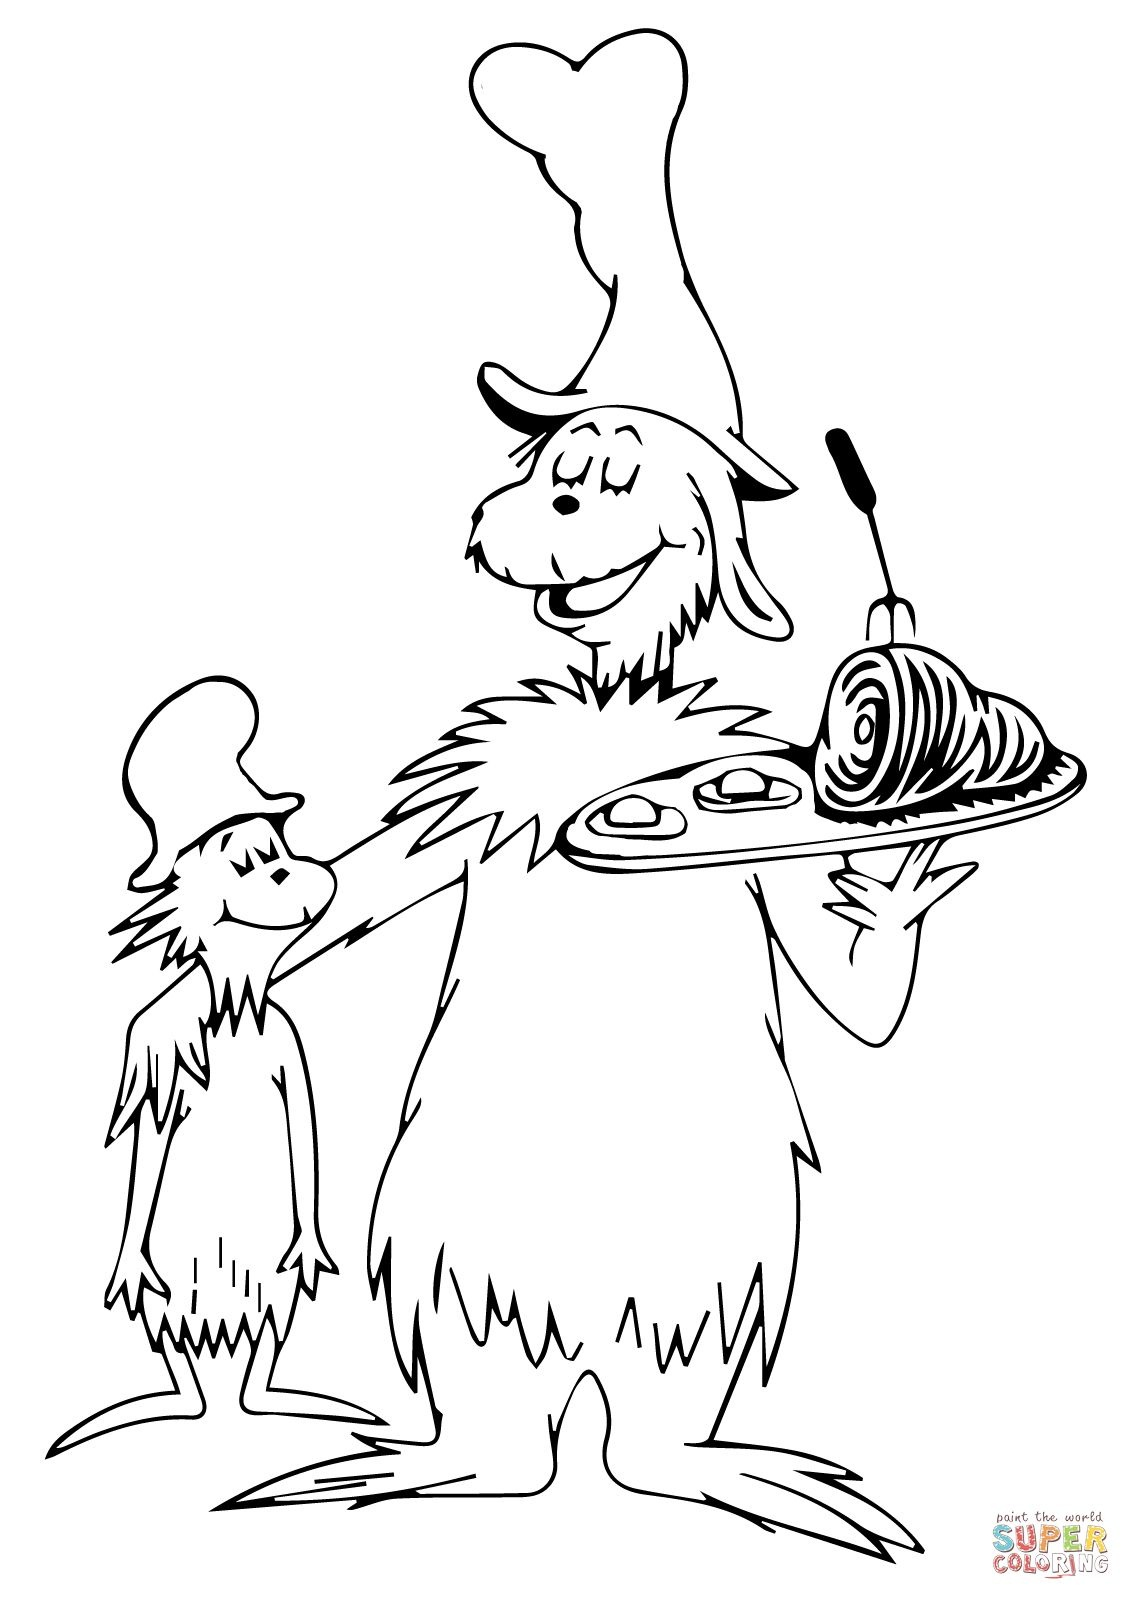 dr seuss coloring pages printable 25 free printable dr seuss coloring pages printable dr seuss coloring pages